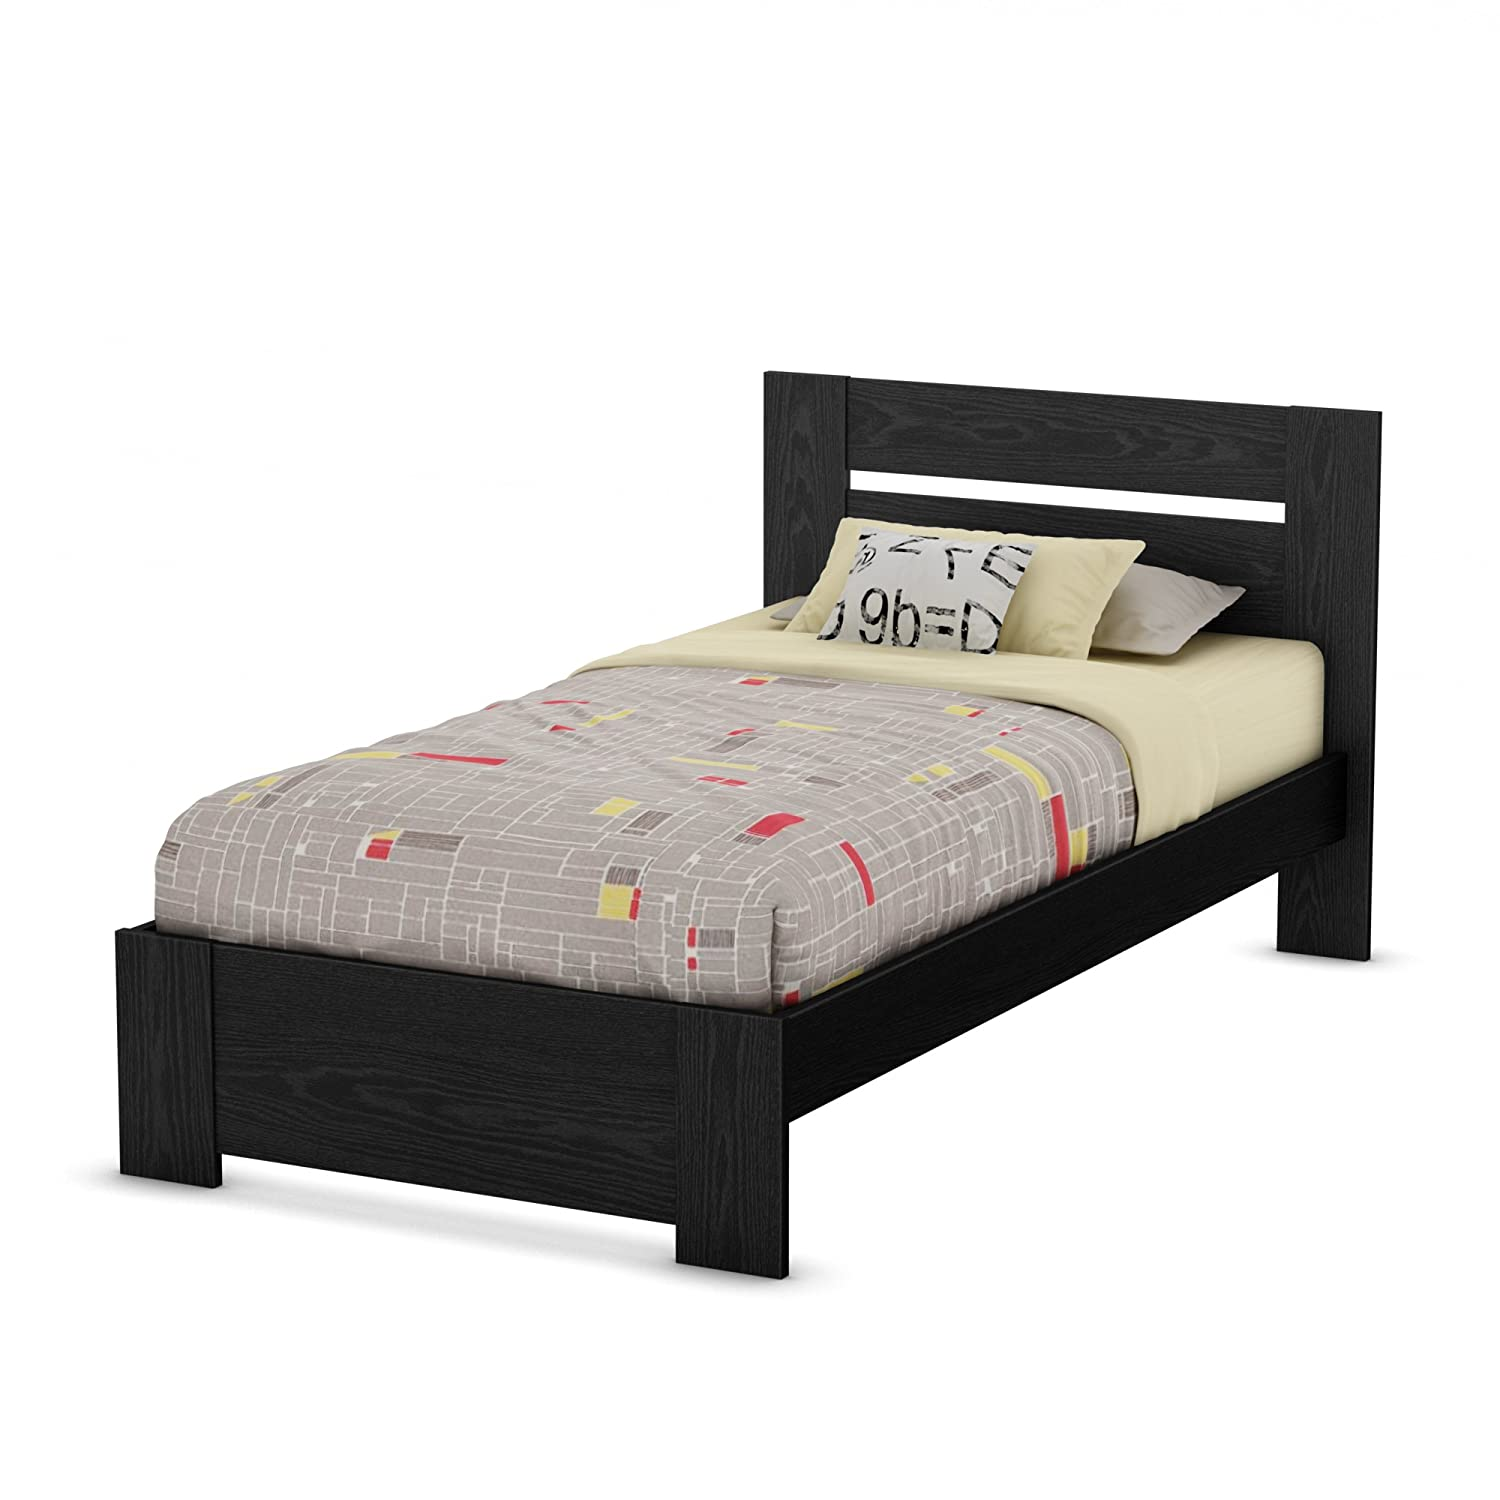 Amazon Com South Shore Flexible Collection Twin Bed Black Oak